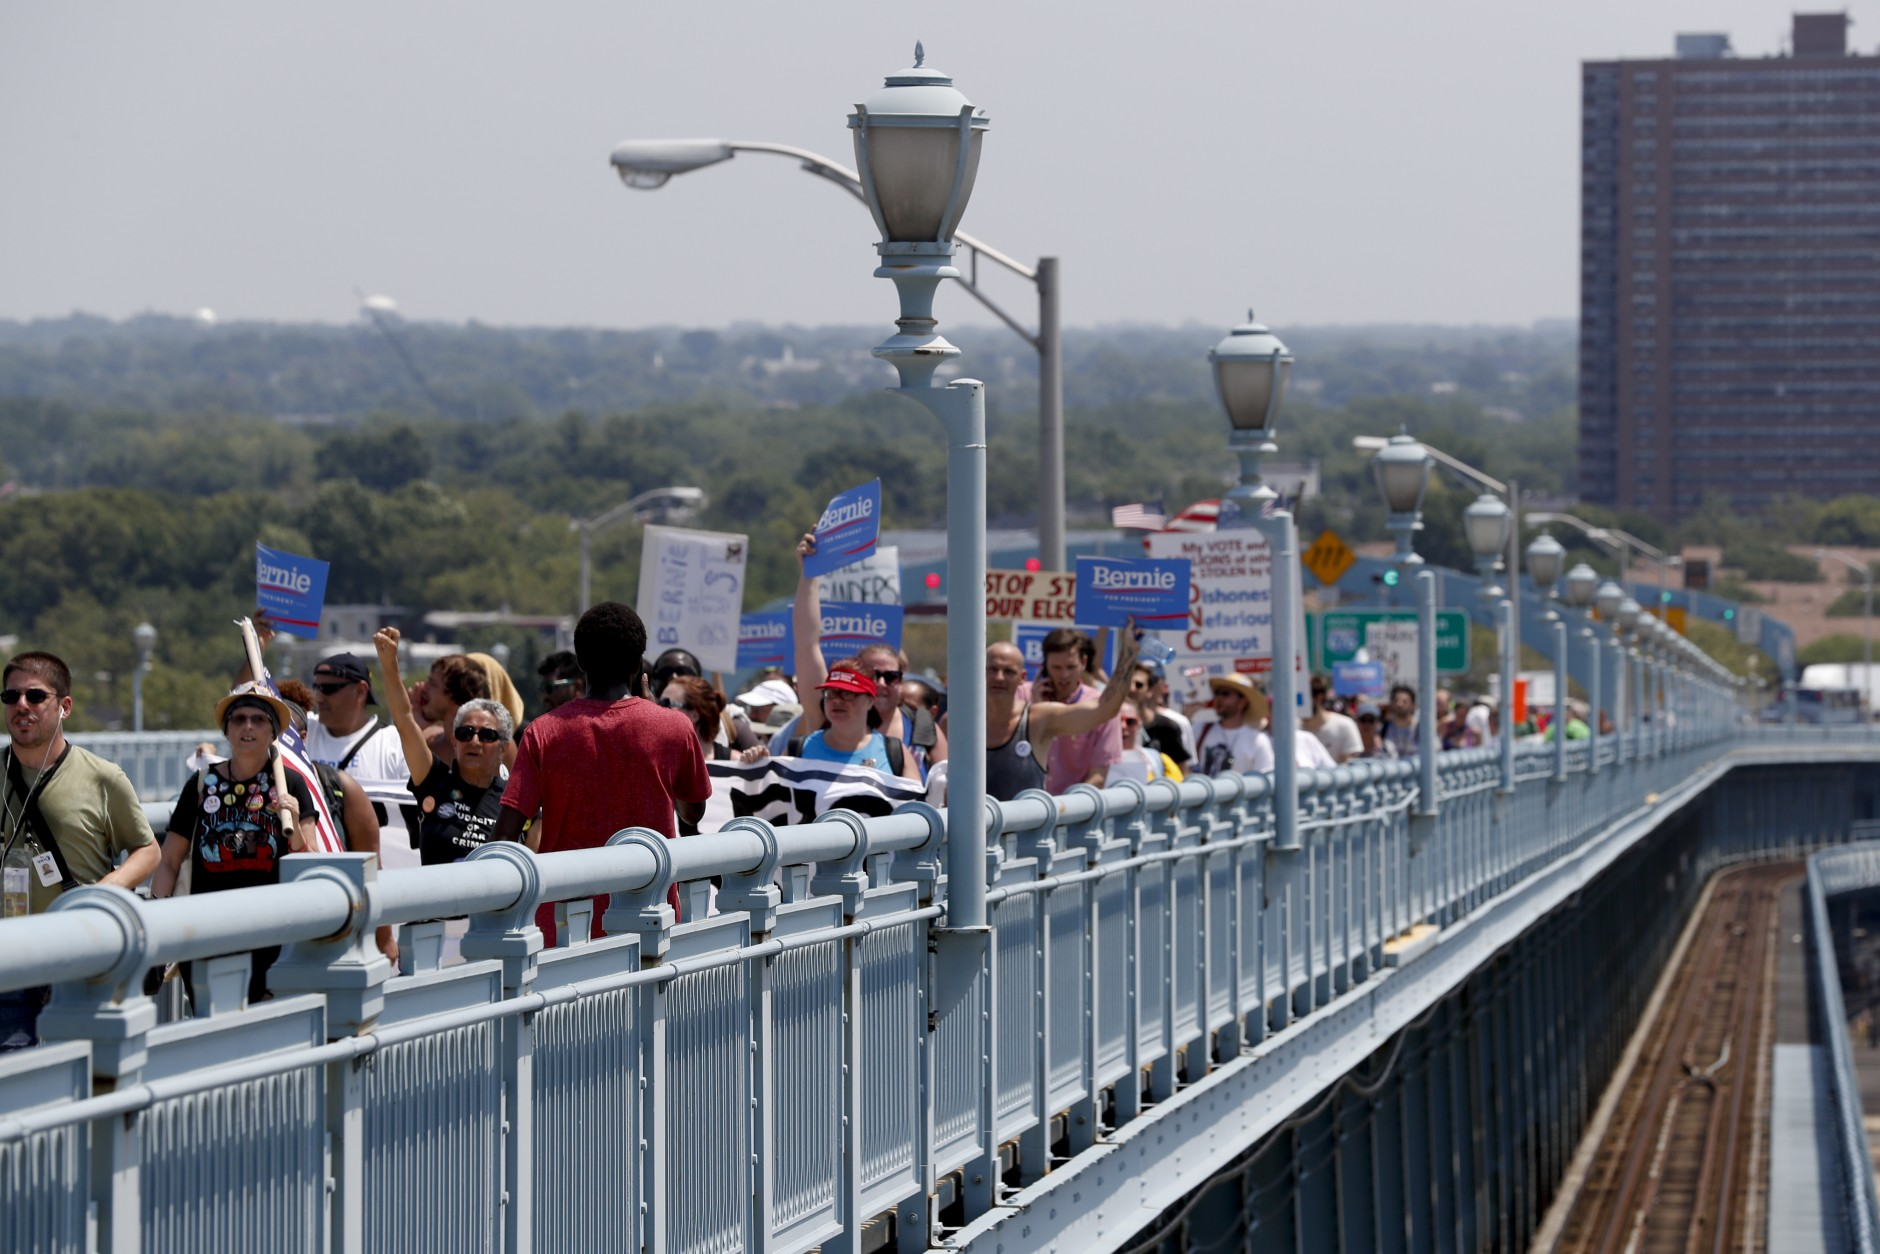 Demonstrators make their way to downtown Philadelphia on the Benjamin Franklin Bridge near Camden, N.J. on Monday, July 25, 2016, during the first day of the Democratic National Convention. (AP Photo/Alex Brandon)